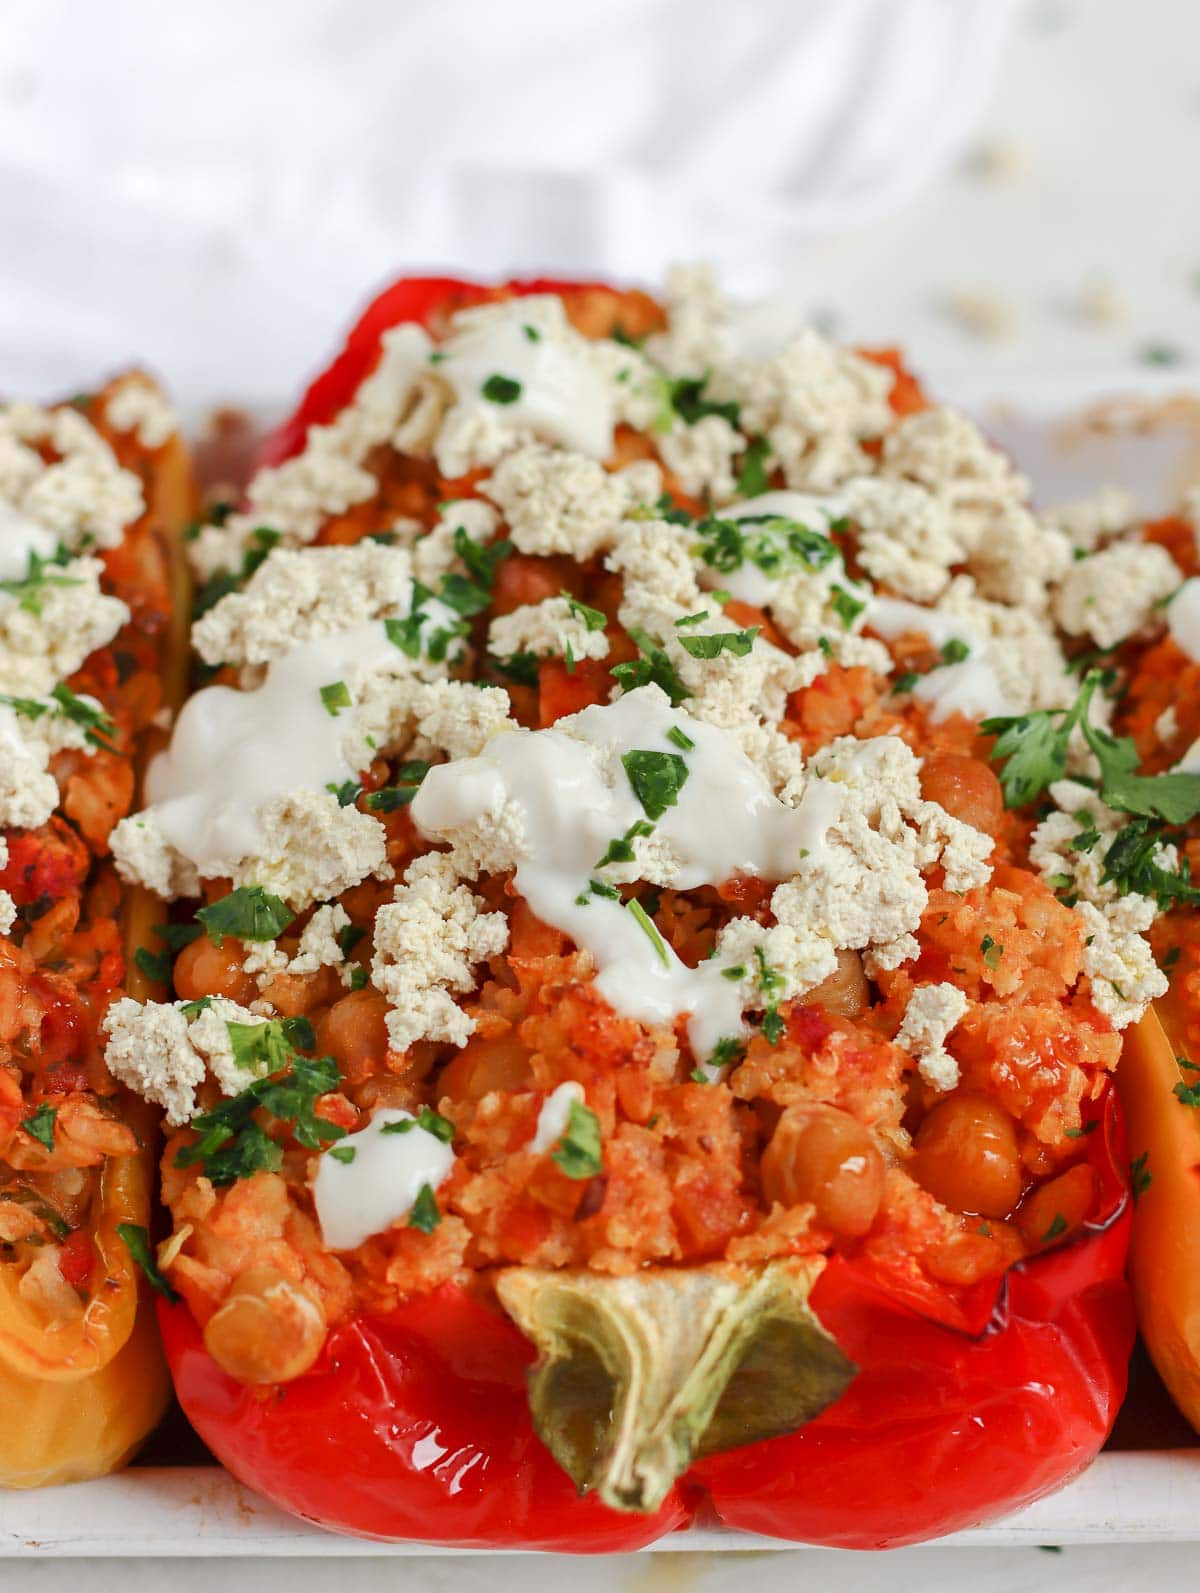 red pepper stuffed with millet and tempeh